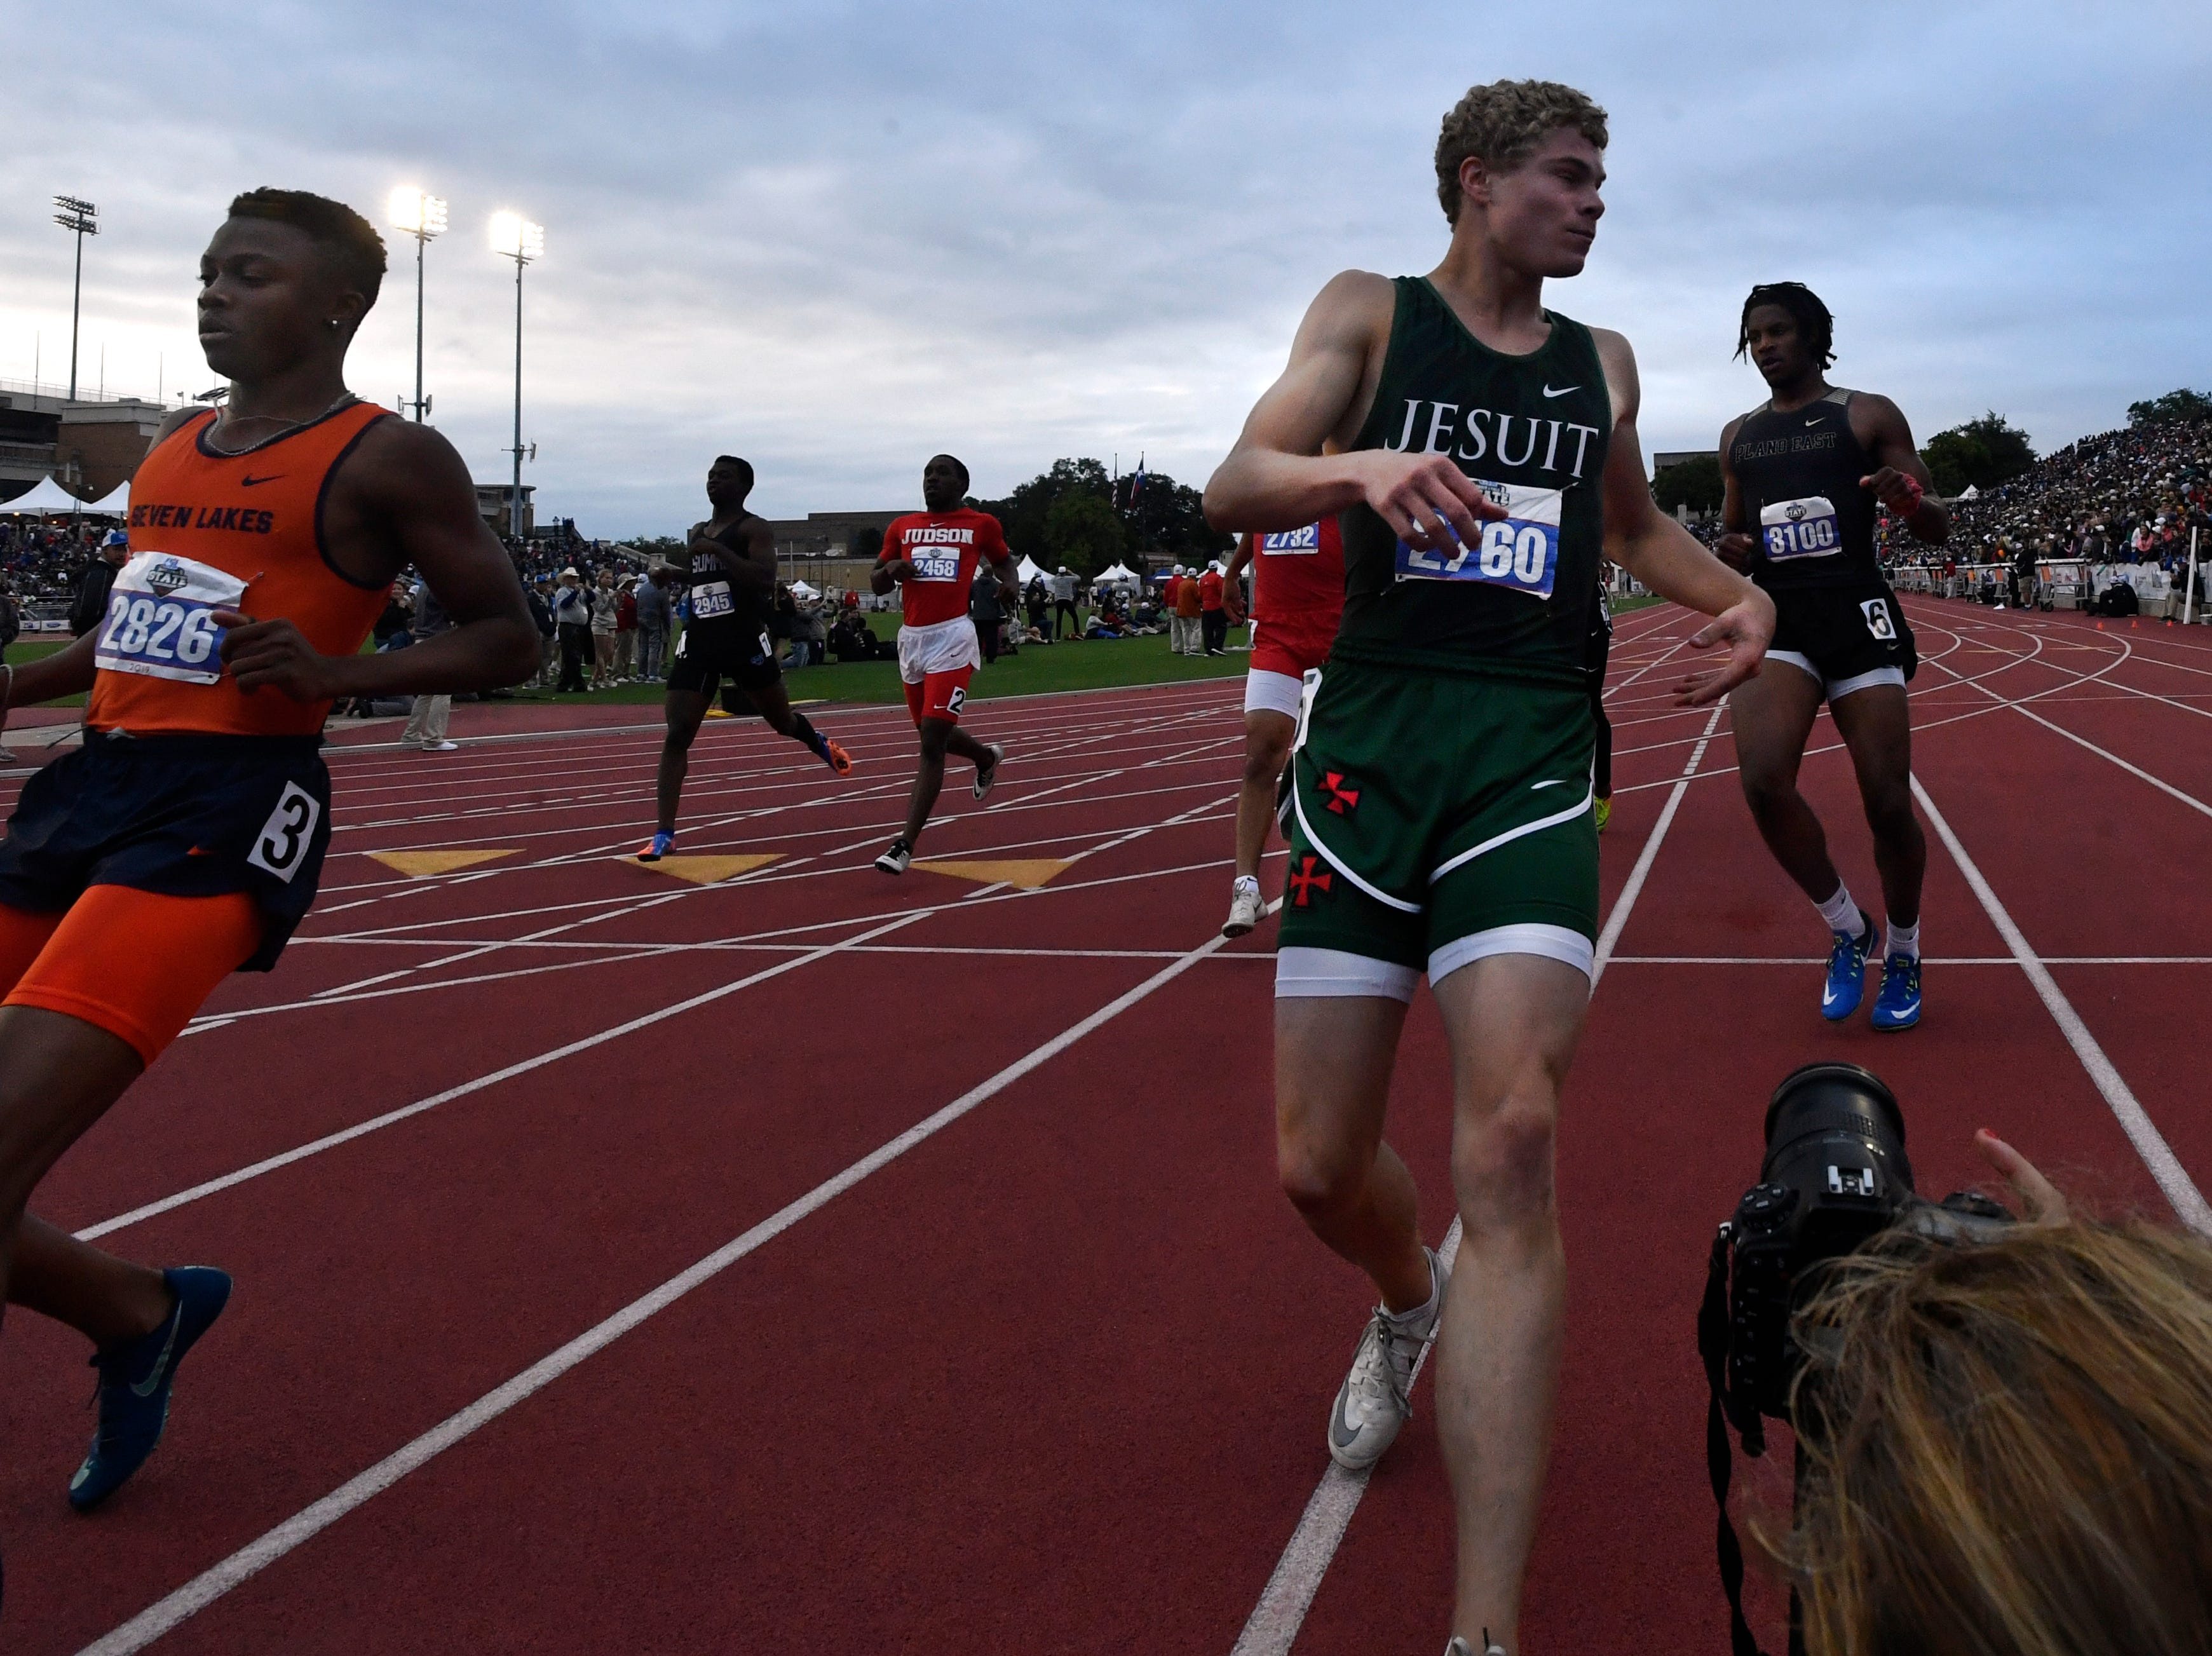 Results 2019 Uil State Track Field Championships